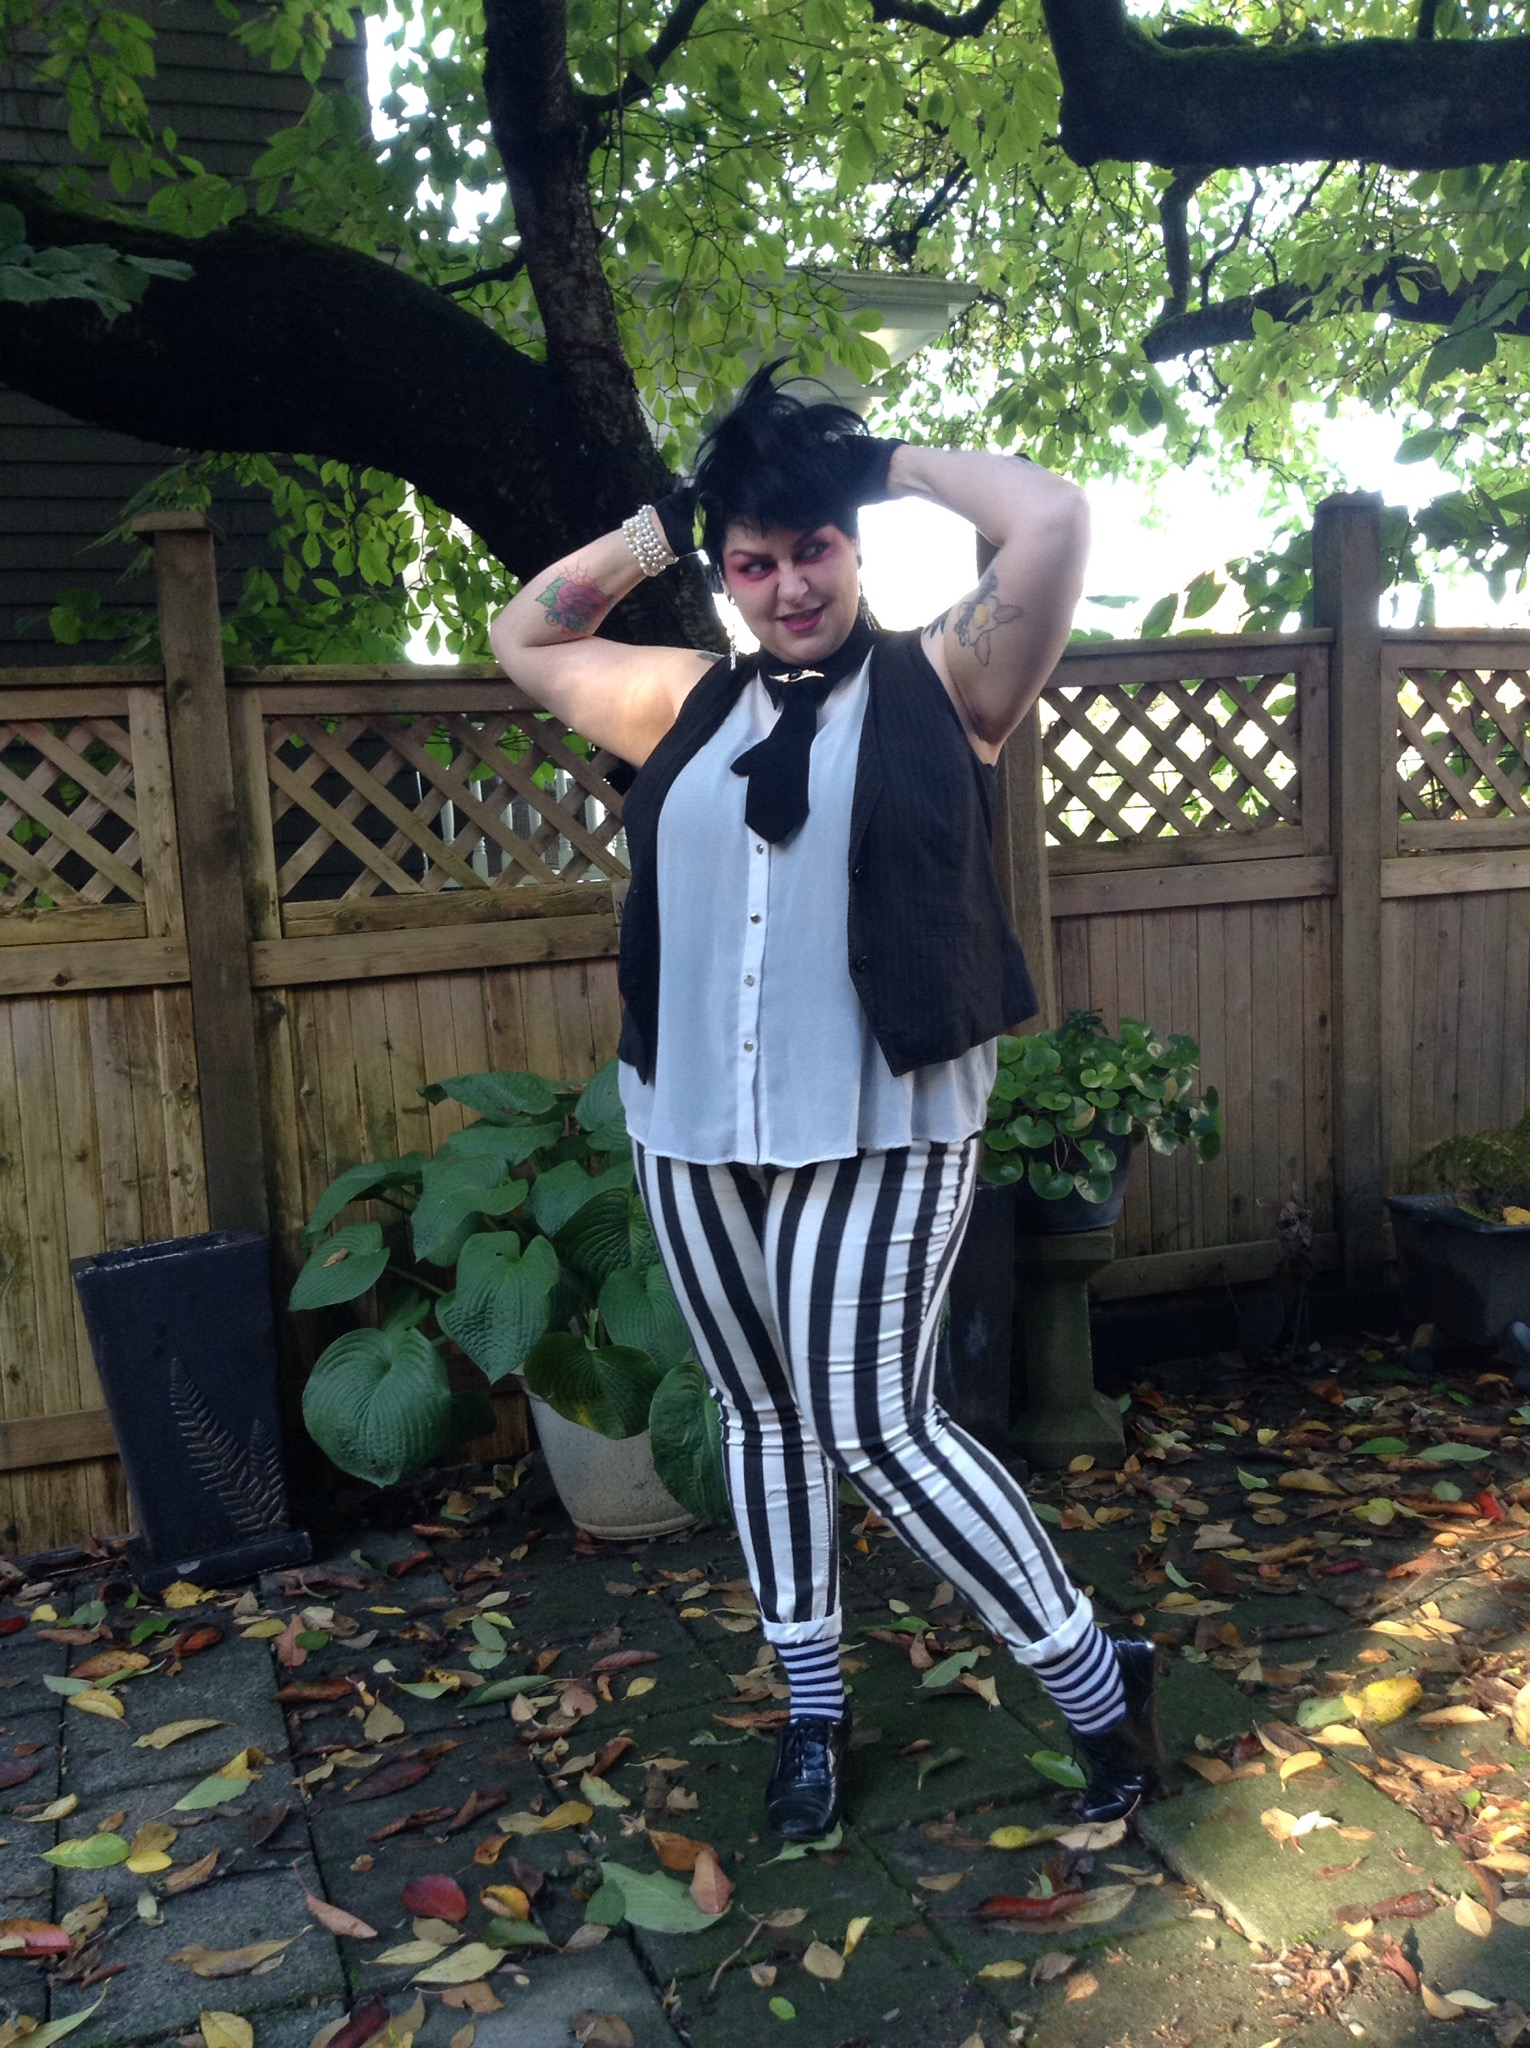 alternative plus size blogger Margot Meanie dressed as Beetlejuice